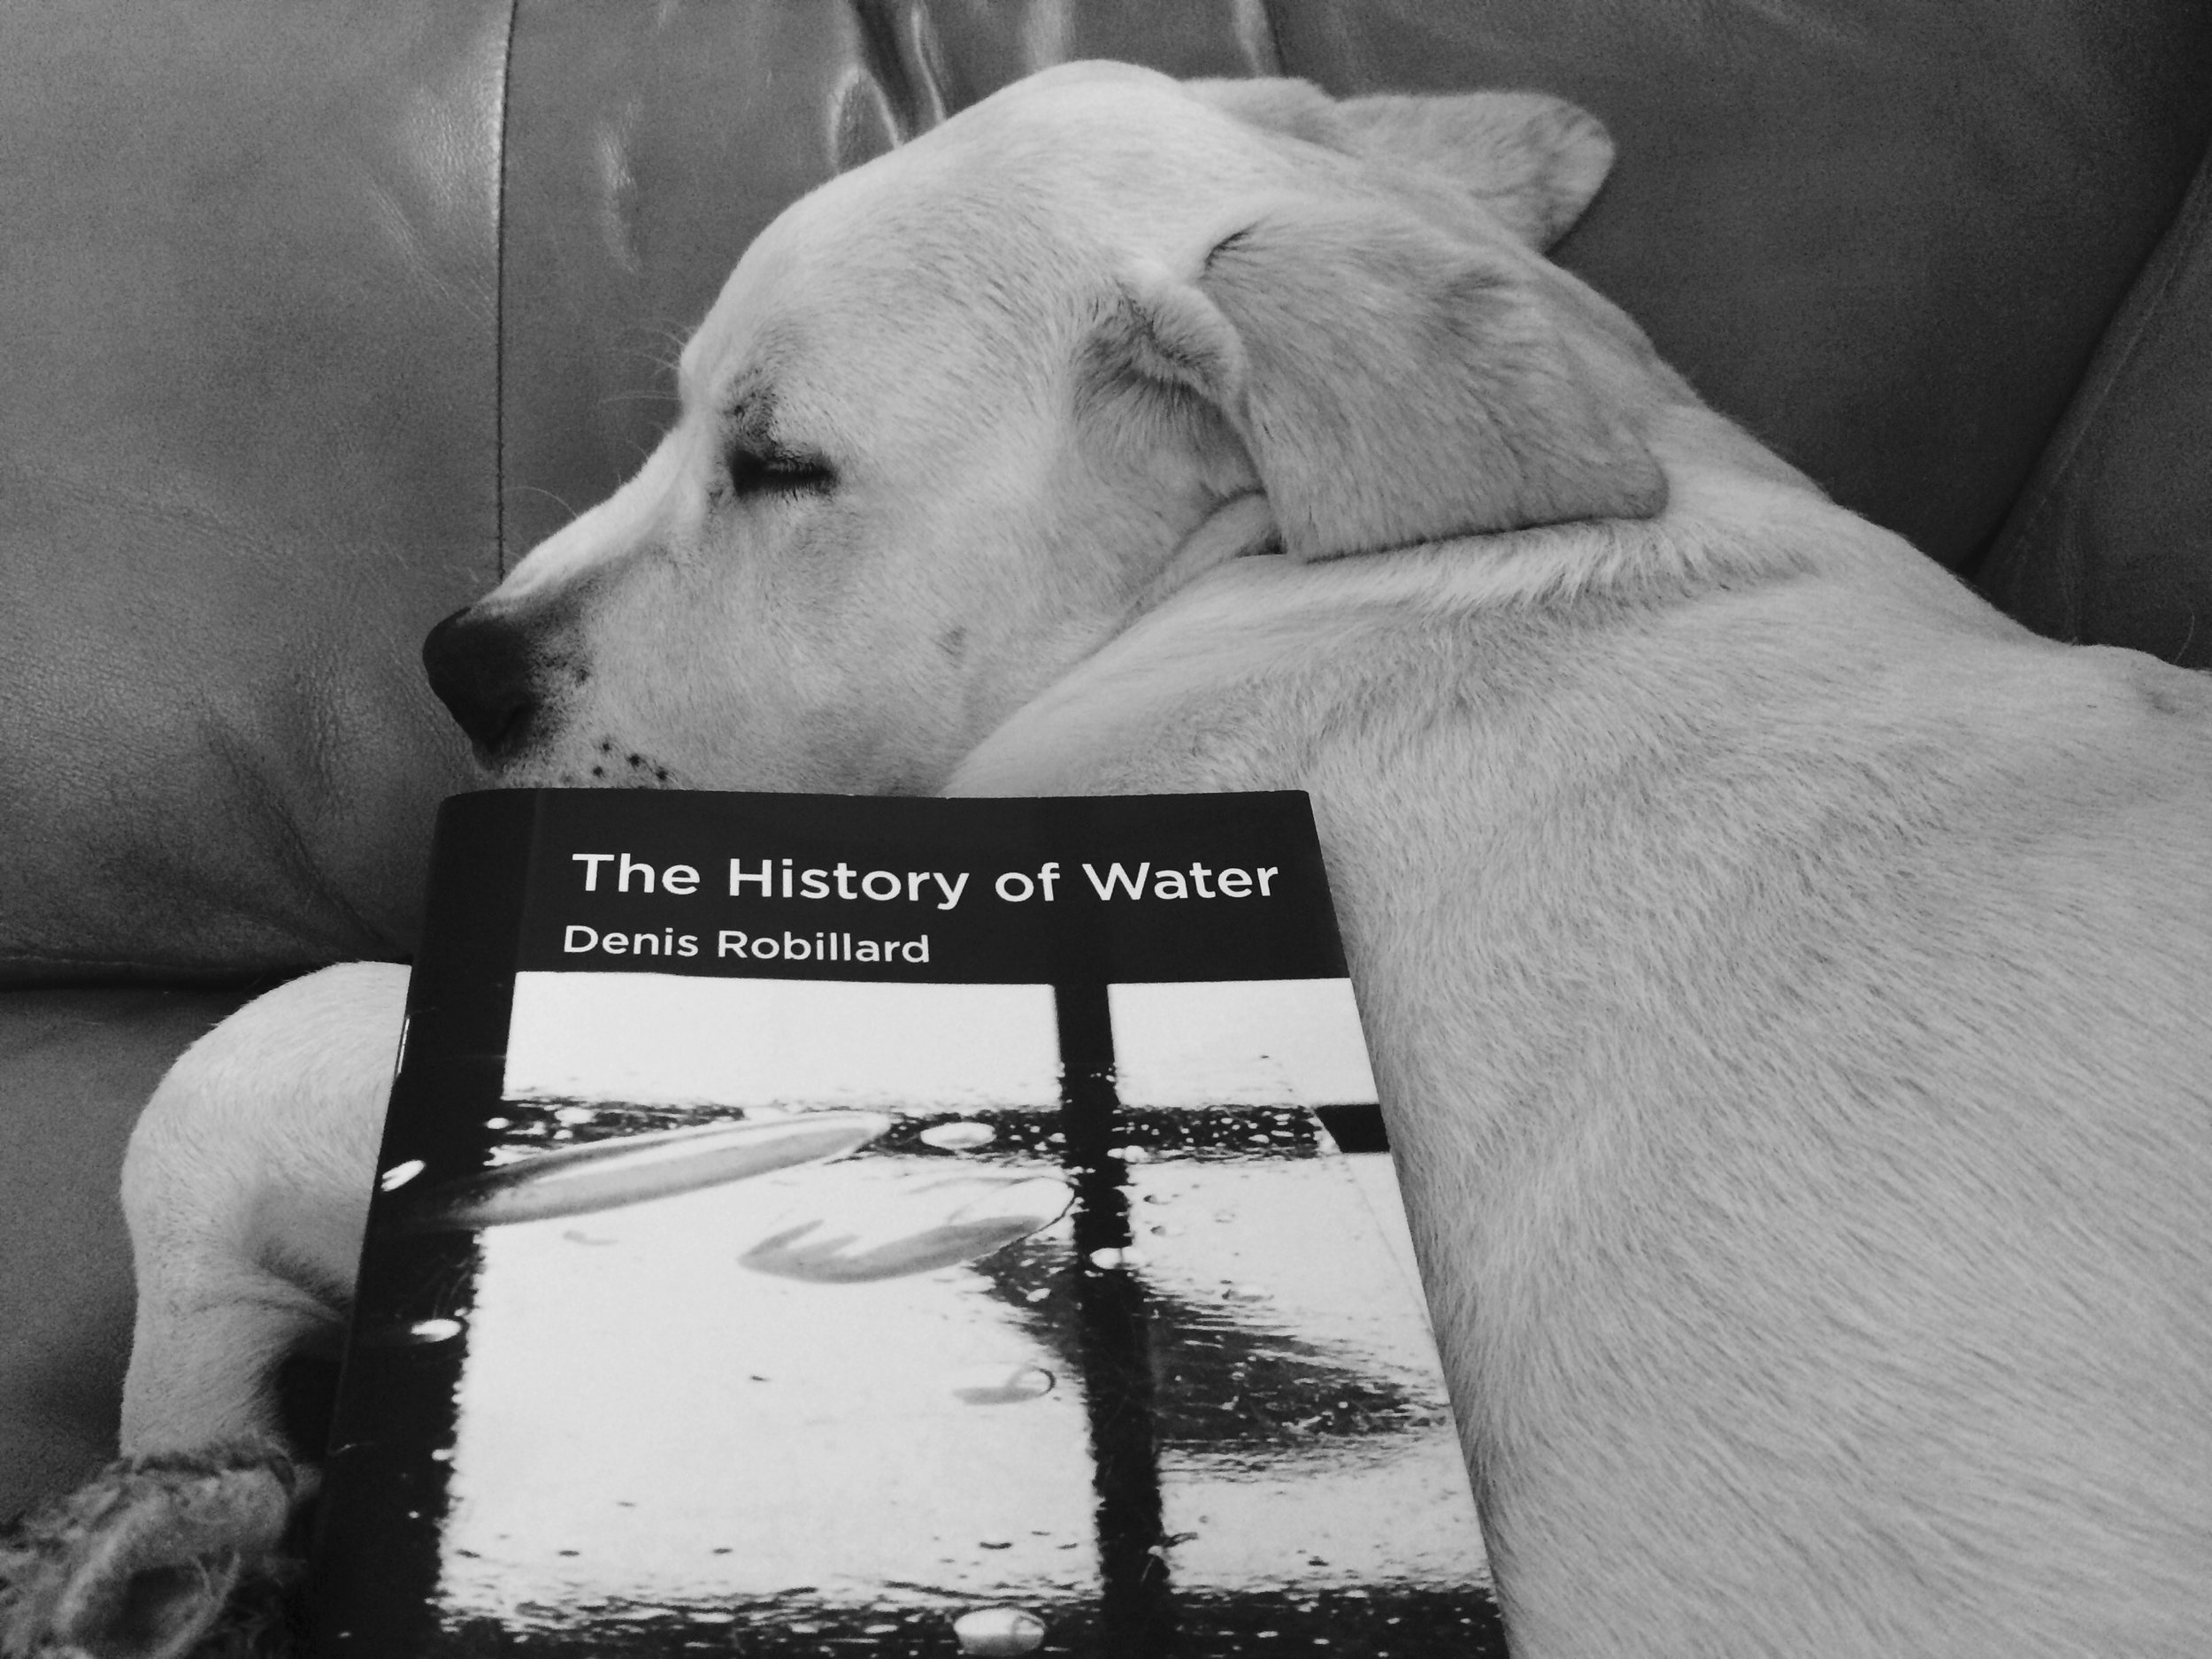 Tom (Cassie's dog)sleeping with a book on him.